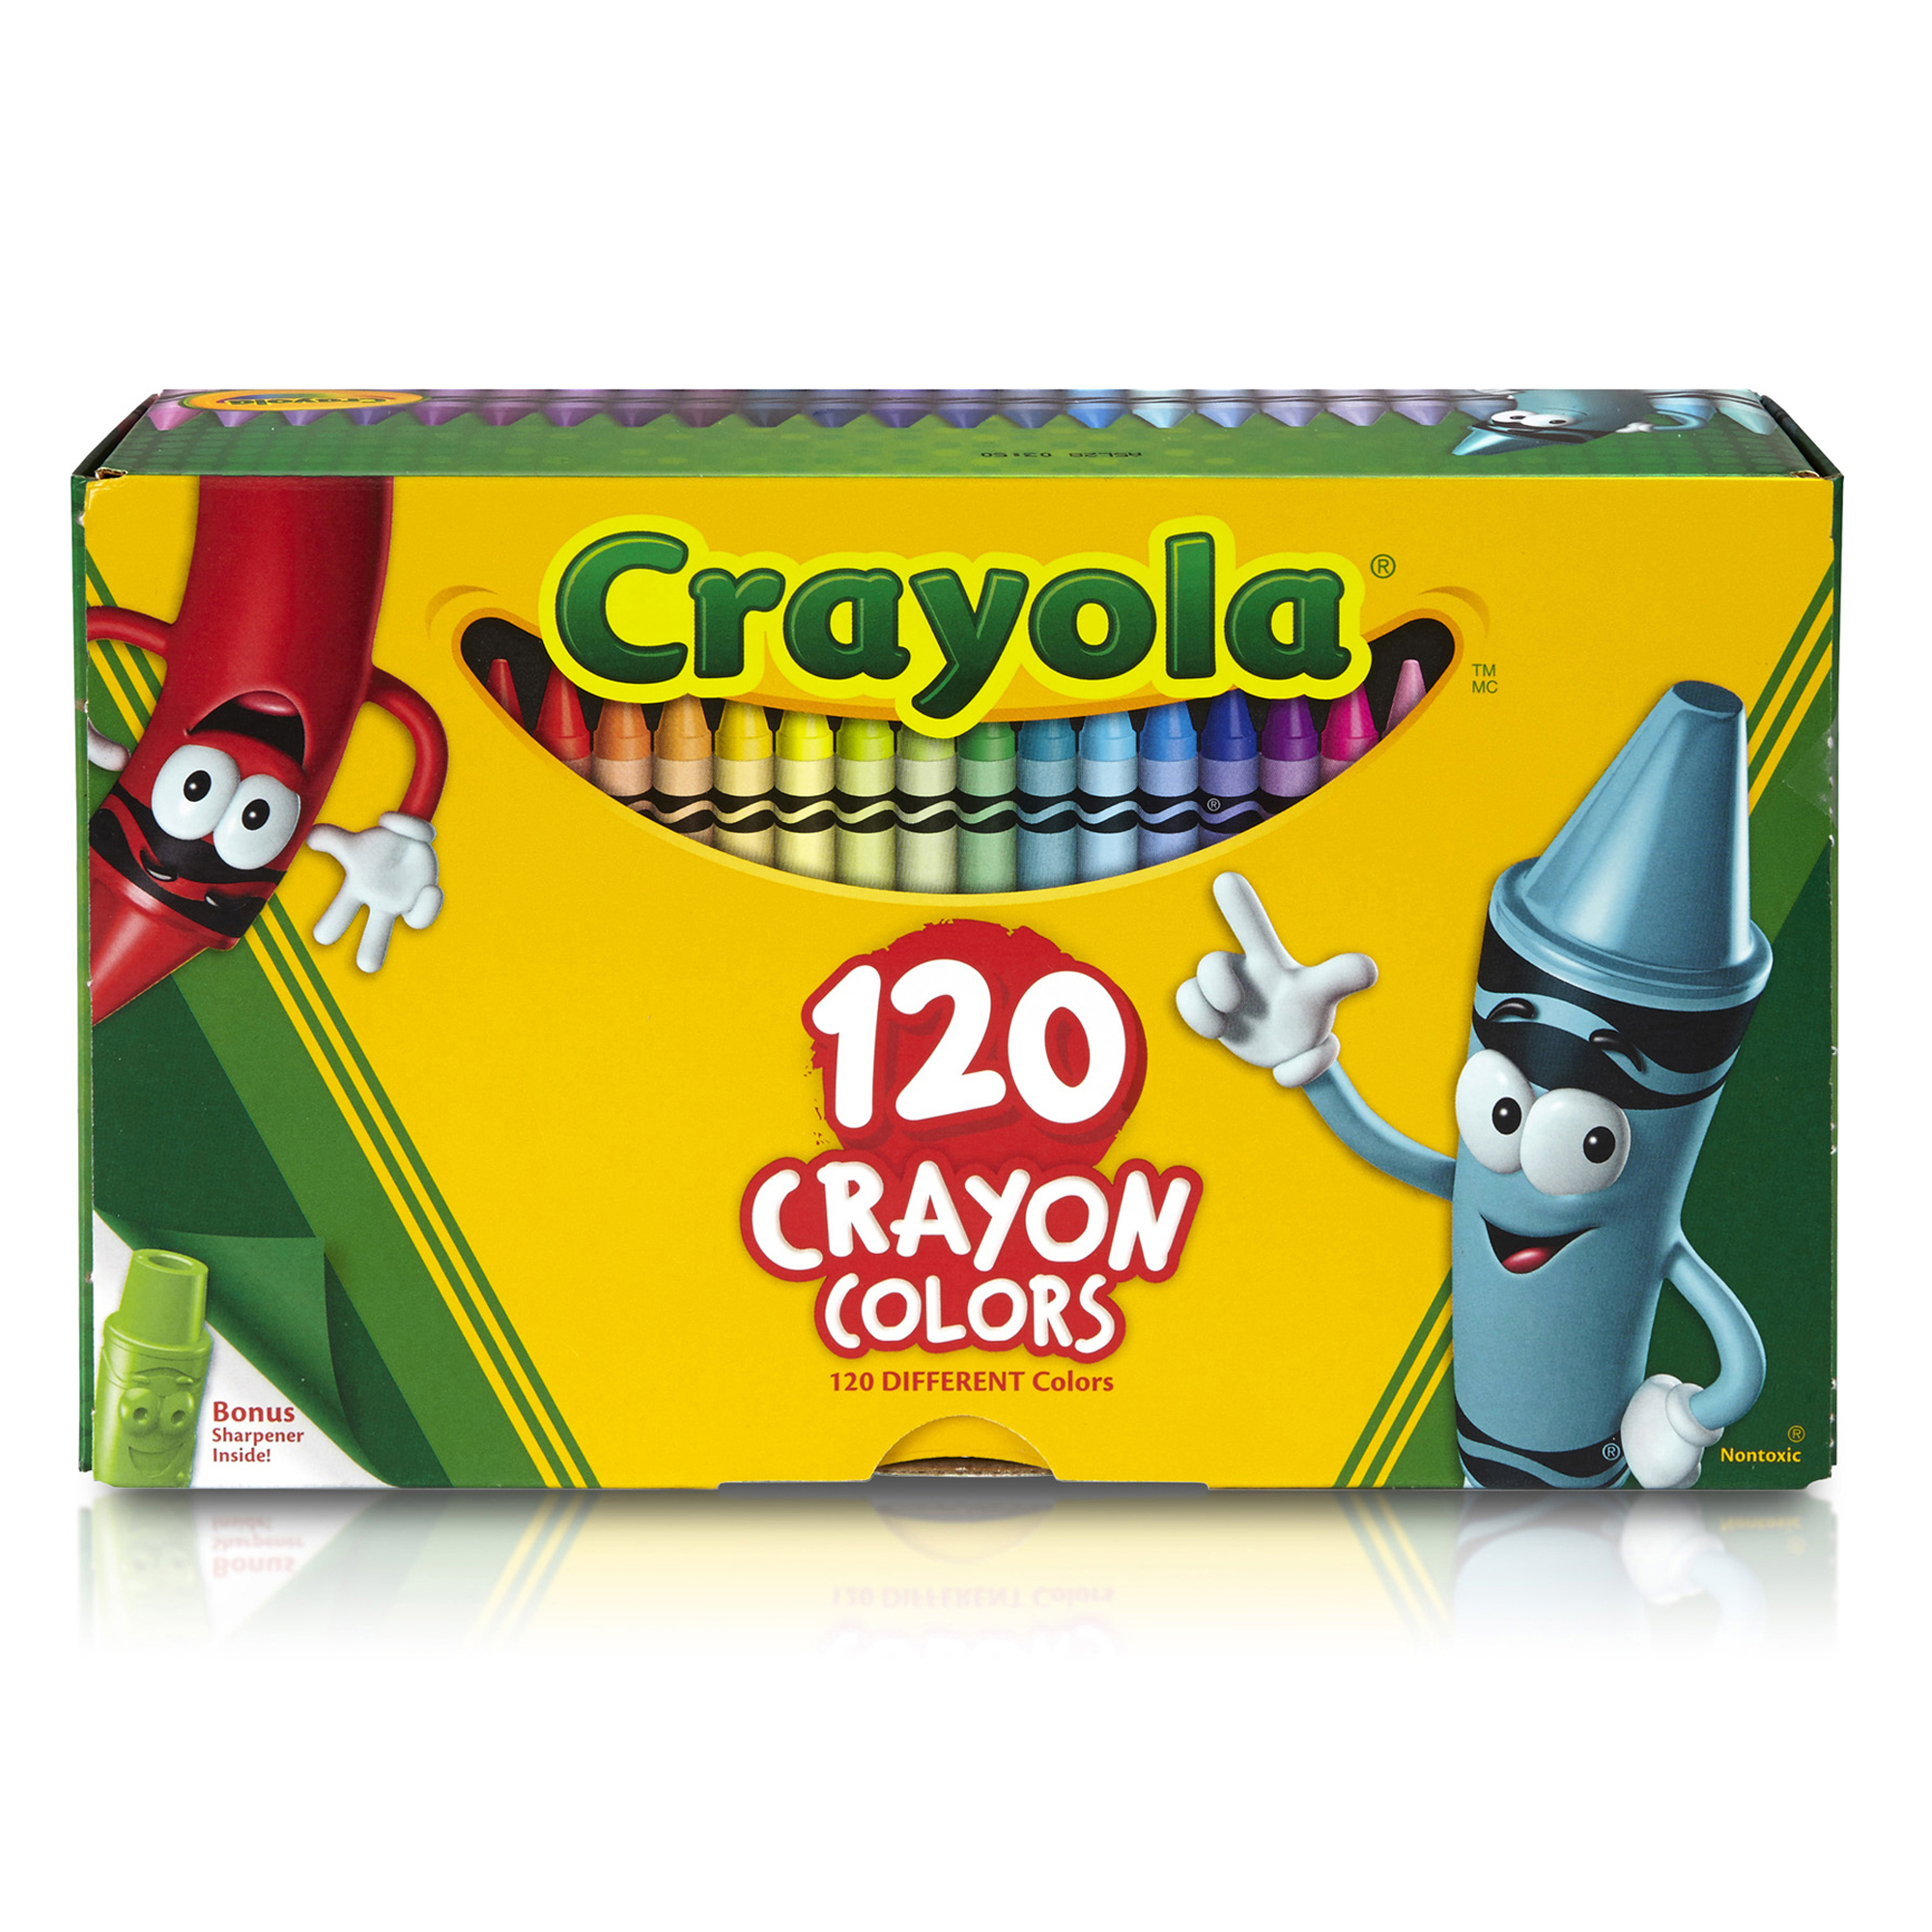 Crayola Classic Crayons 120 count with Tip Crayon Sharpener